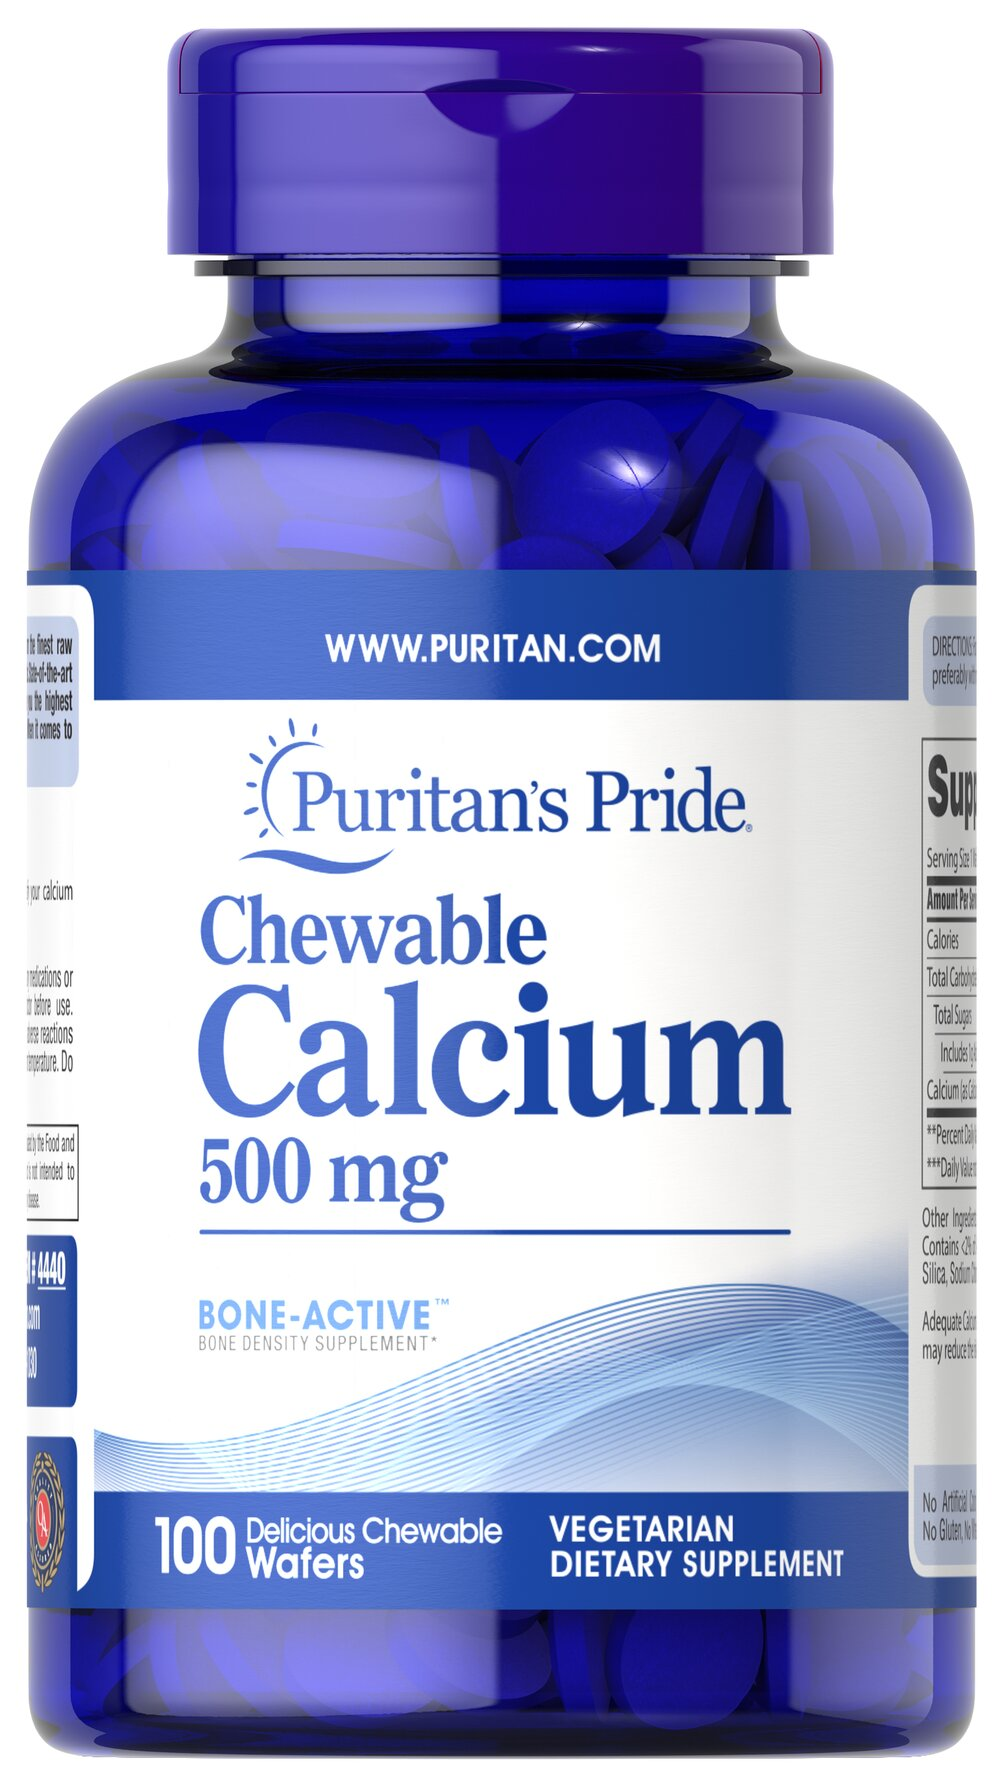 Chewable Calcium 500 mg <p>Supports Bone Health**</p><p>Many factors contribute to the development of osteoporosis including sex, race, age, and hormonal status. It's important to remember that everyone loses bone mass with age. Regular exercise, a healthy diet and adequate Calcium intake help maintain good bone health and may reduce the high risk of osteoporosis later in life.</p> 100 Chewables 500 mg $11.99